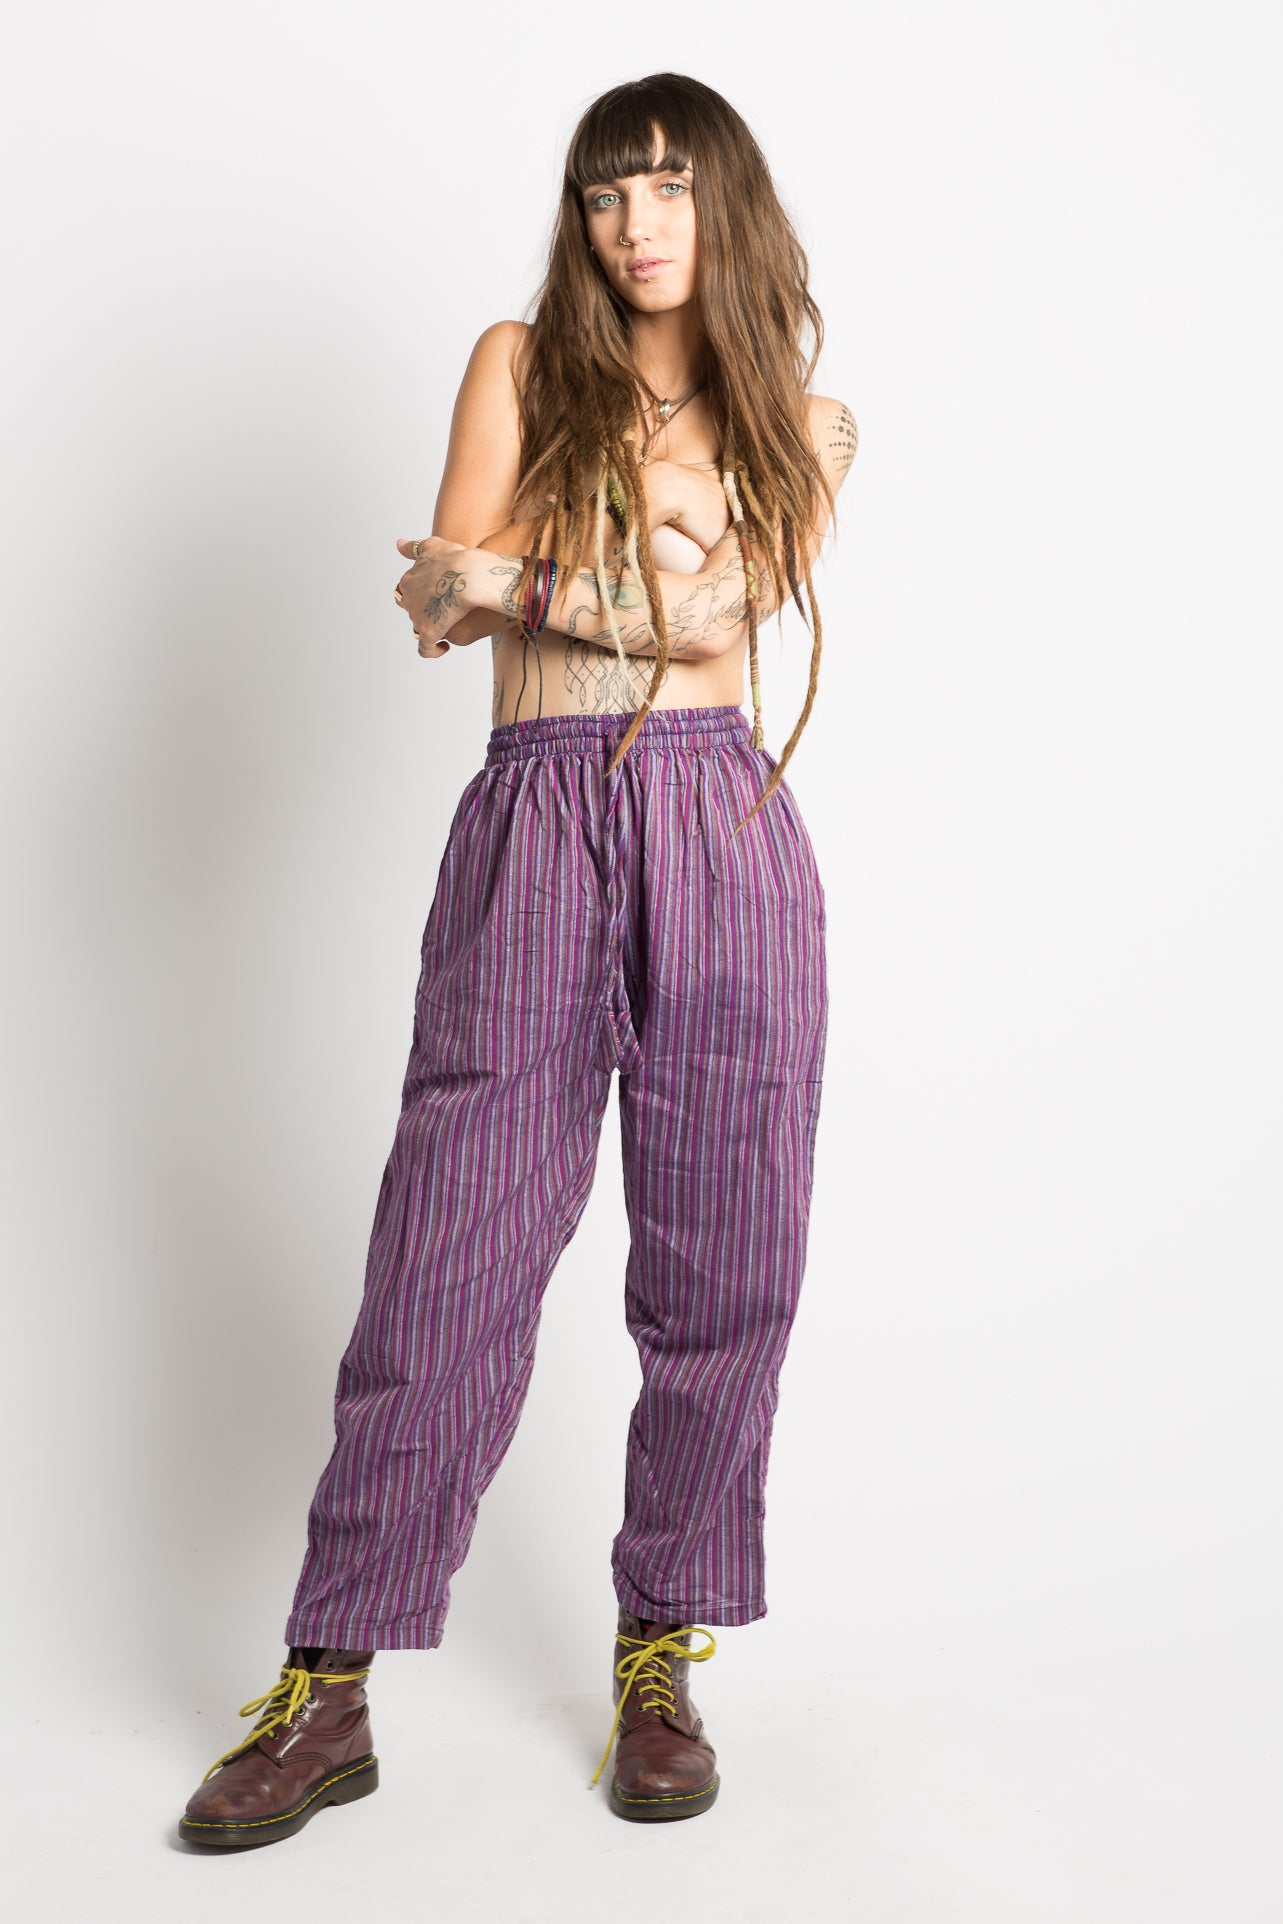 Handmade Nepalese Striped Hippie Pants